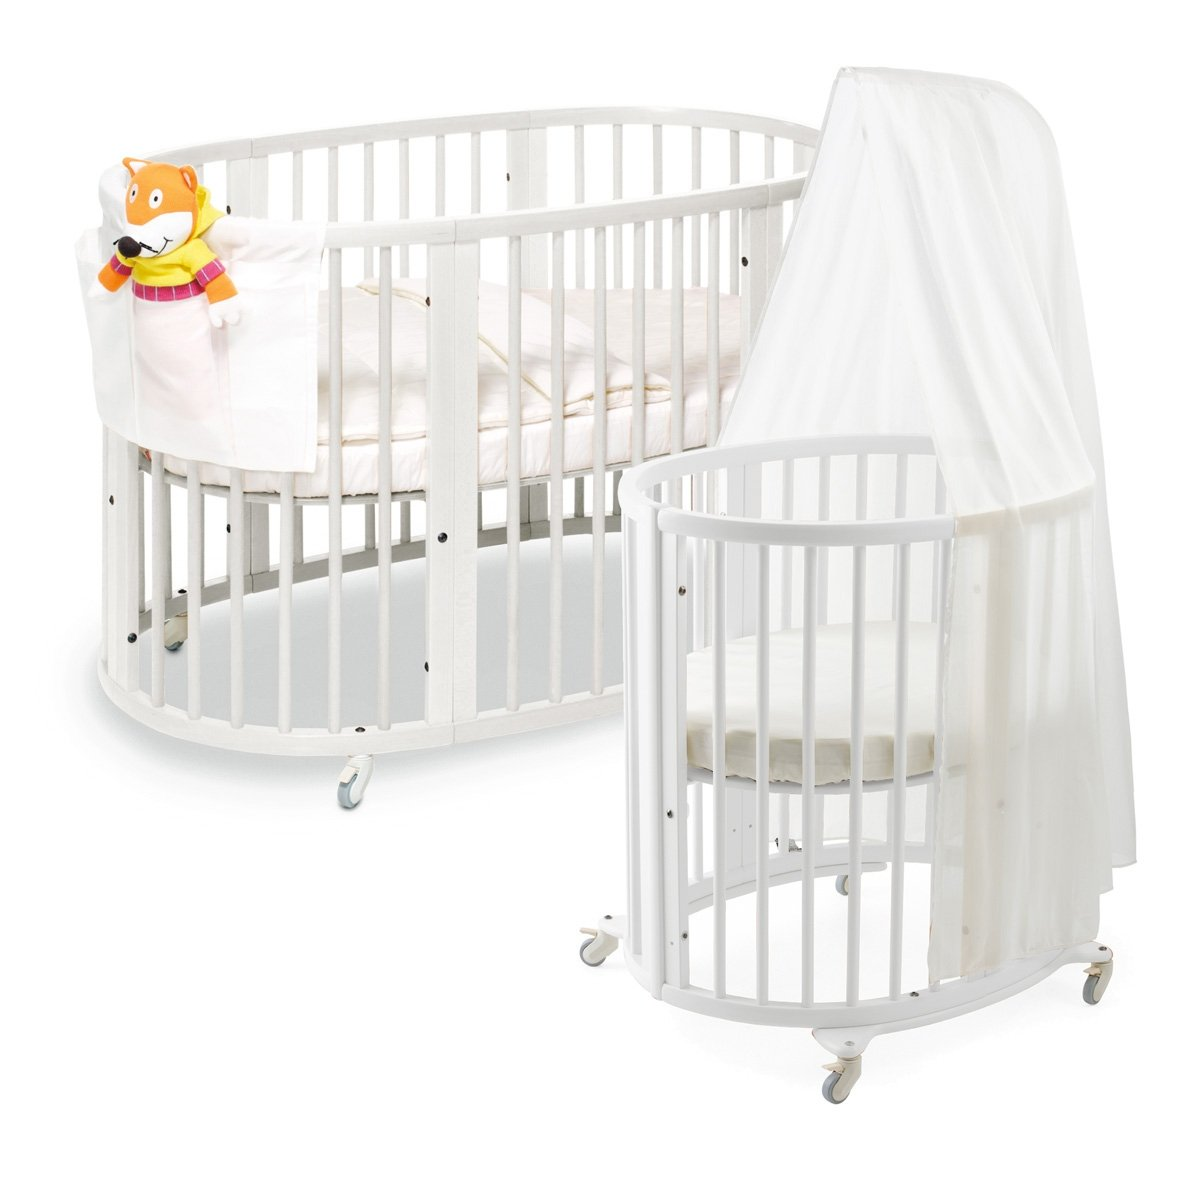 amazoncom  stokke sleepi system white  crib bedding sets  baby -